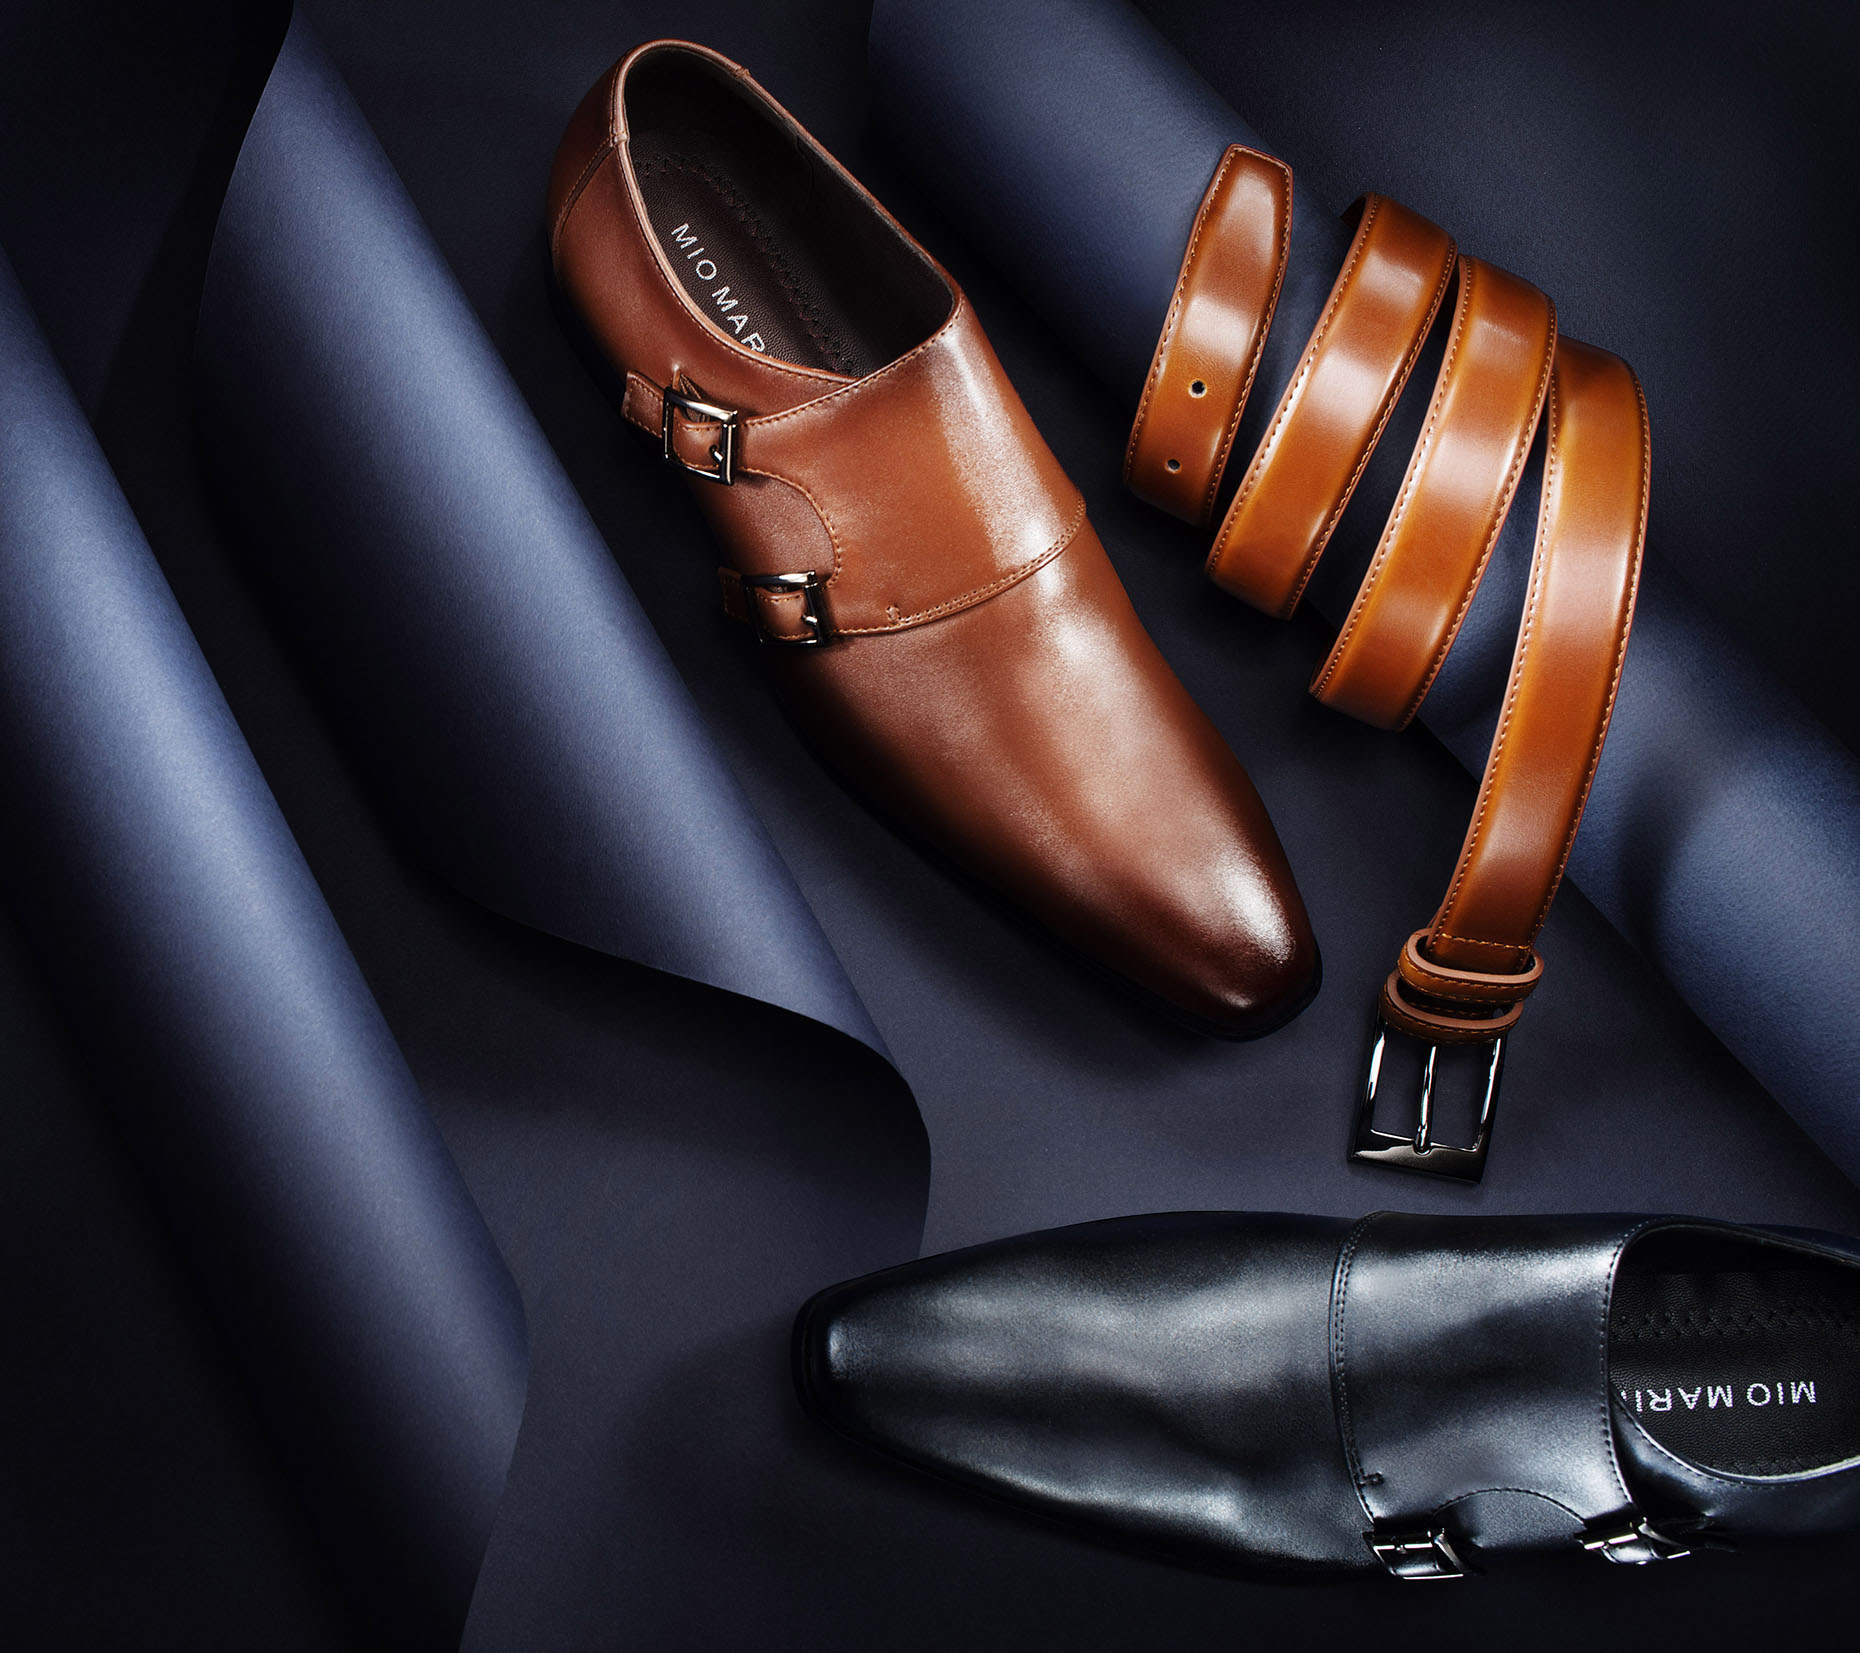 New-york-still-life-photgoraphy-fashion-accessories-shoes-off-figure-still-life-photog